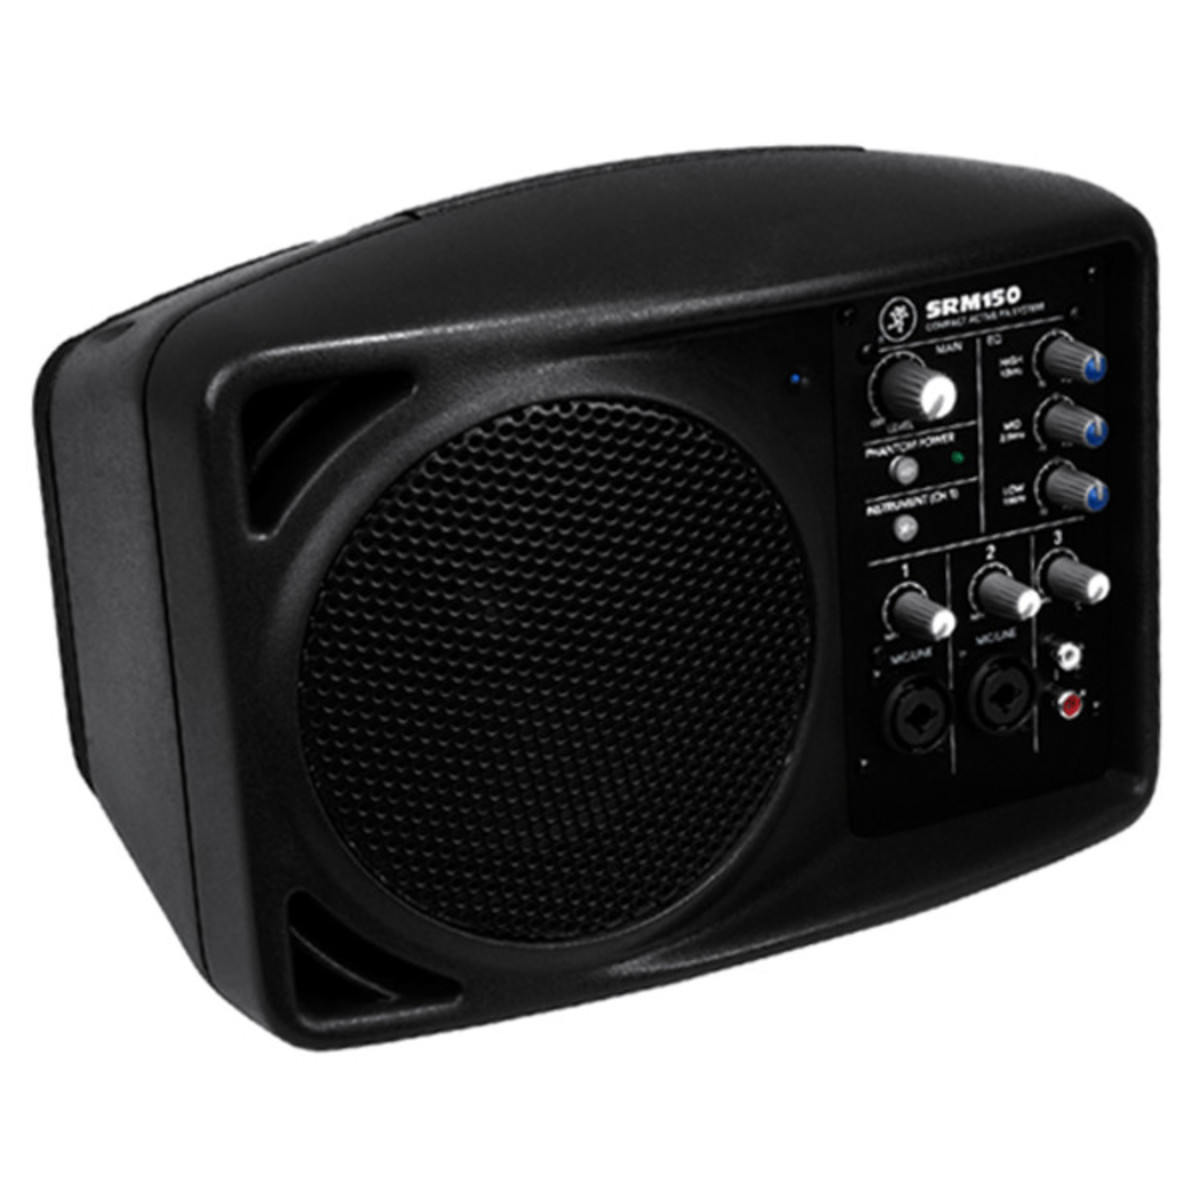 mackie srm150 compact pa system single nearly new at gear4music. Black Bedroom Furniture Sets. Home Design Ideas